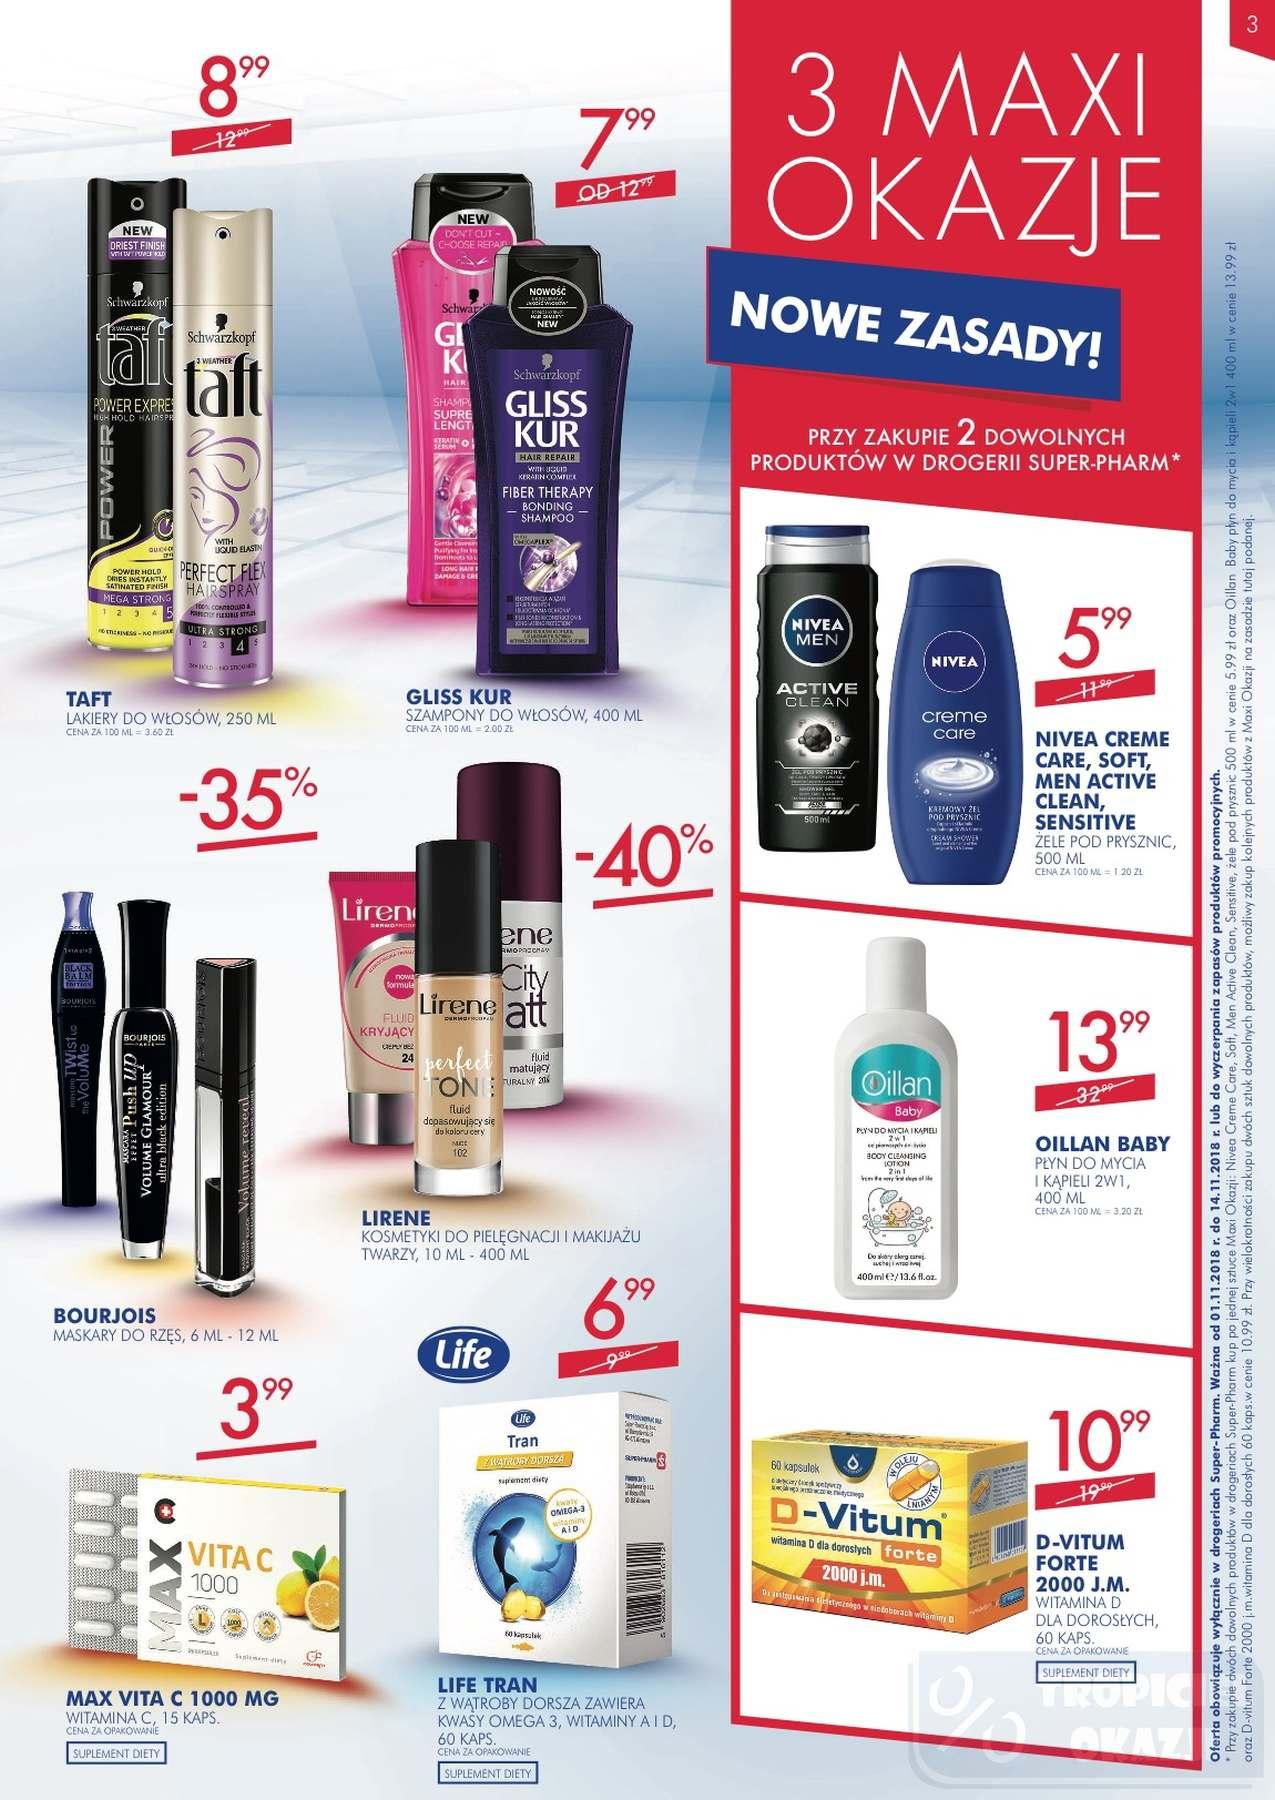 Gazetka promocyjna Superpharm do 14/11/2018 str.2